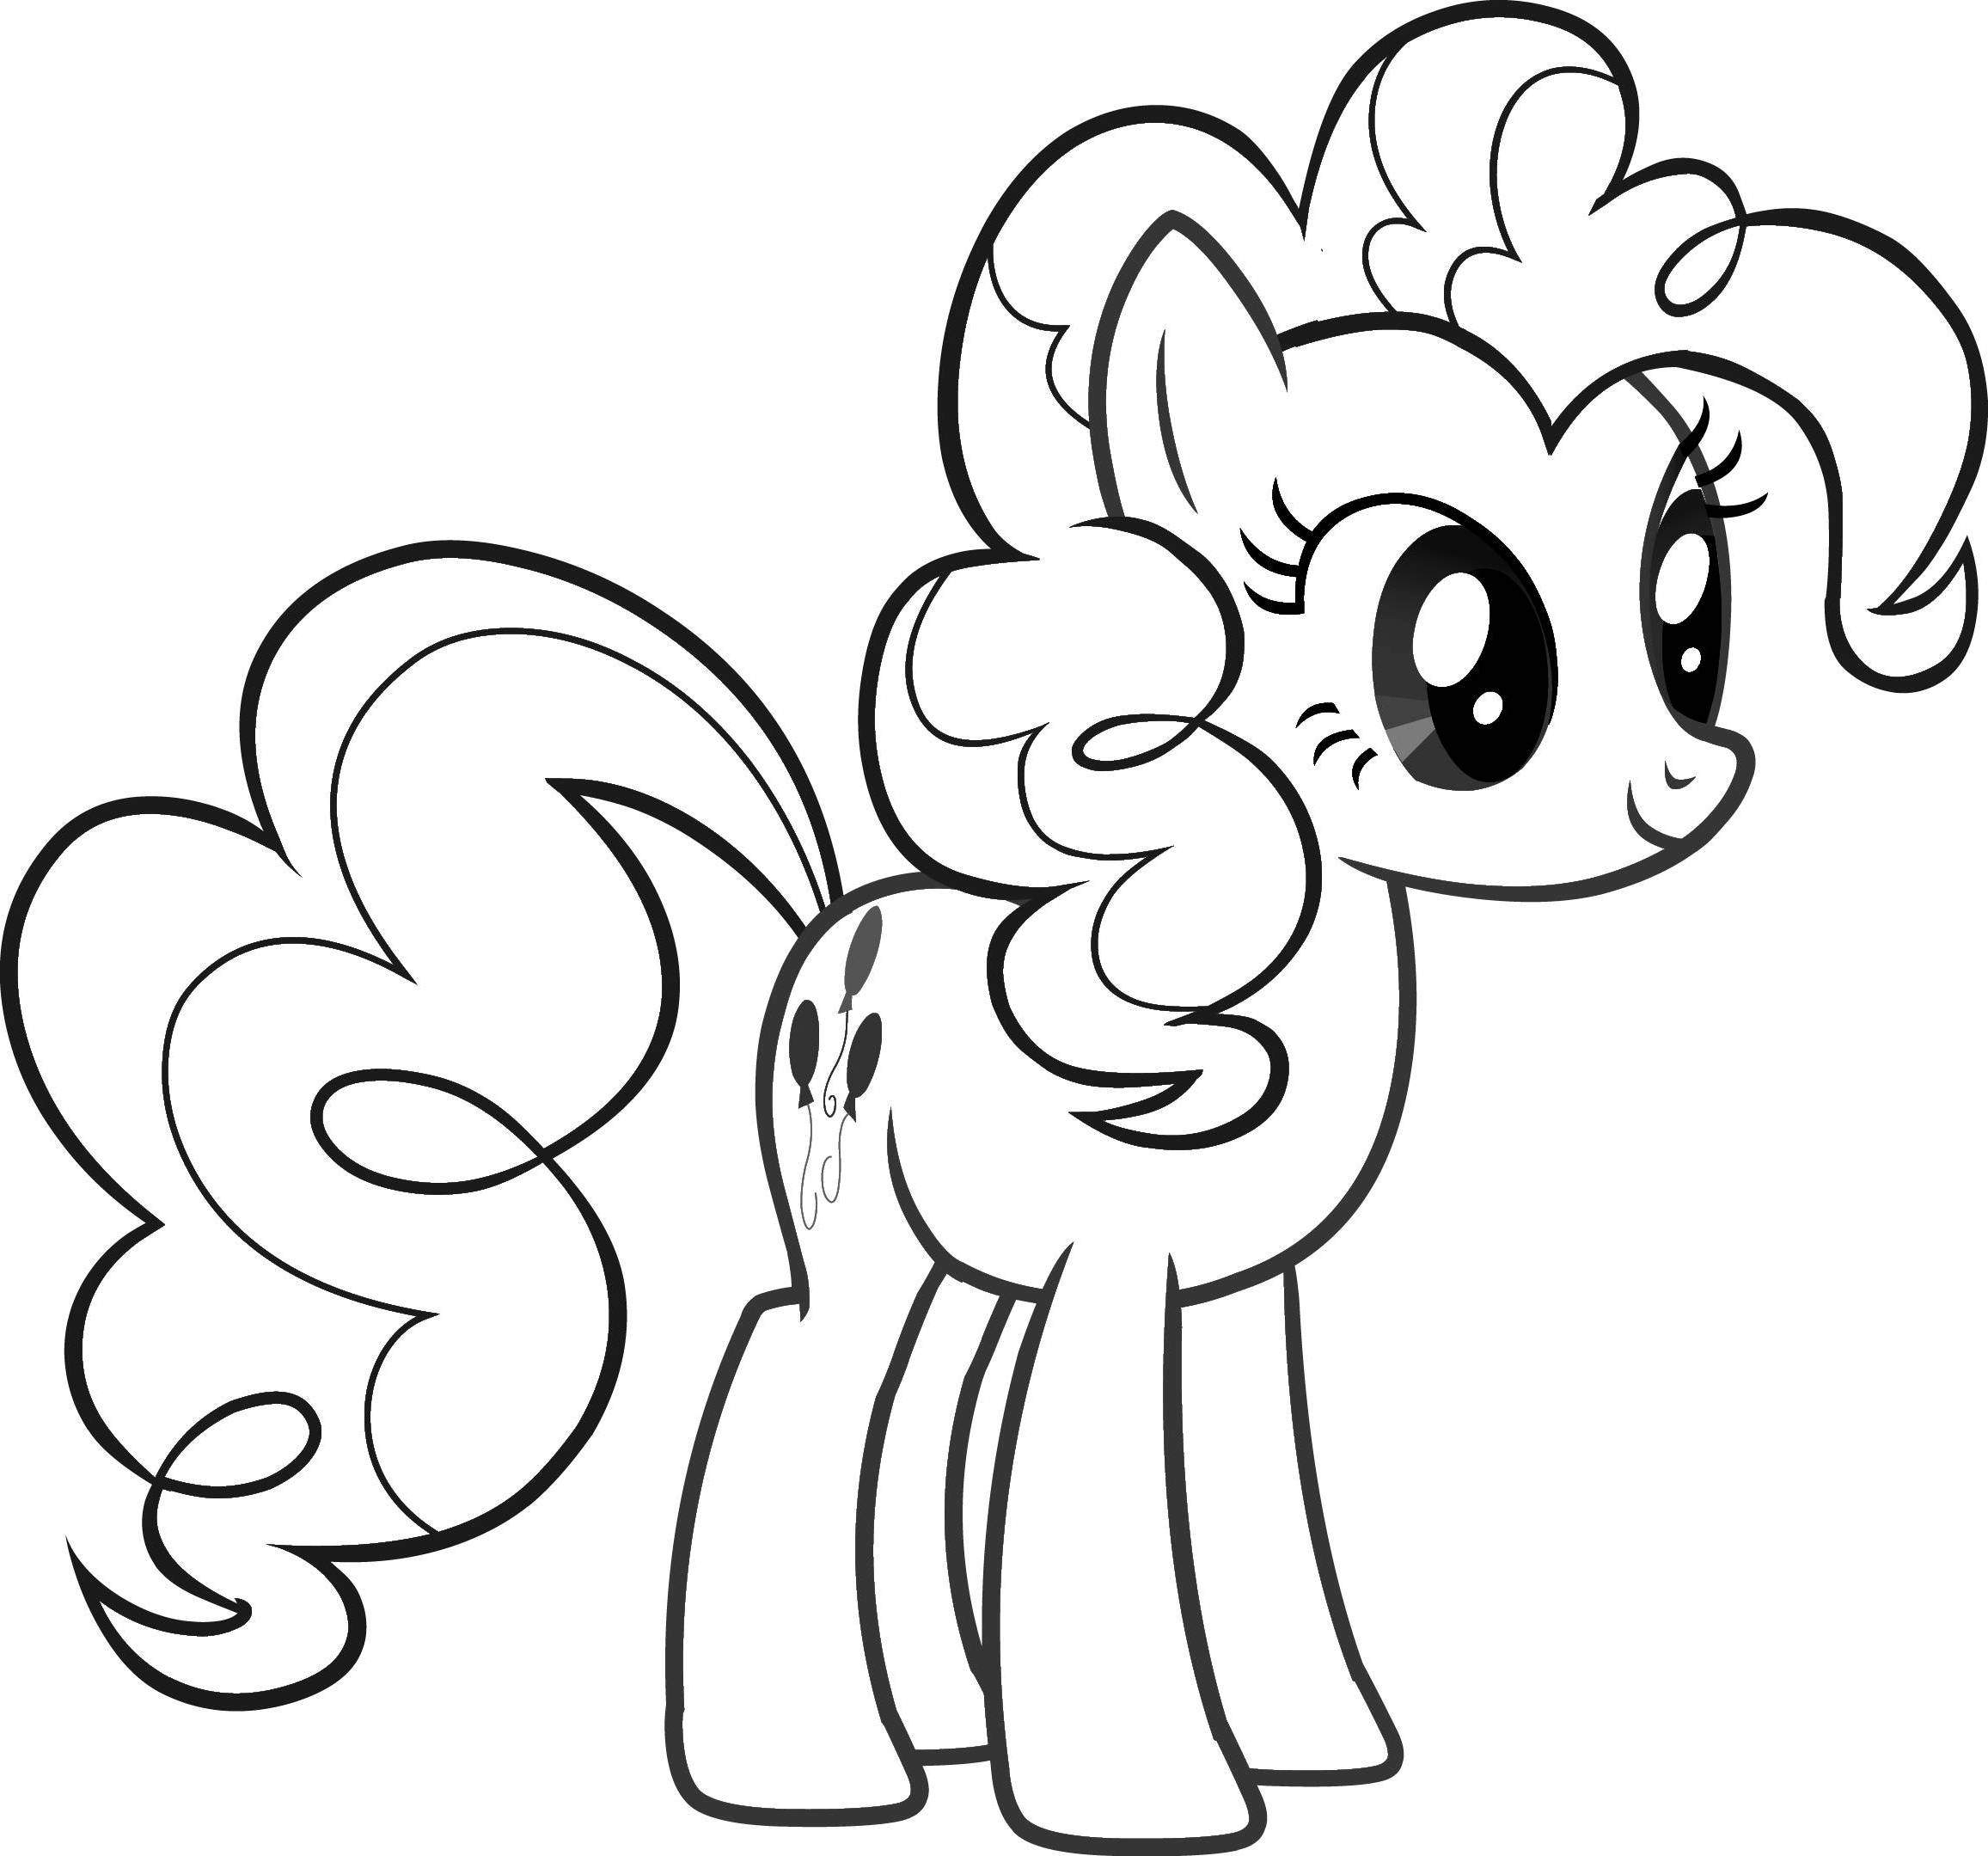 coloring sheets cute cute easy coloring pages at getcoloringscom free coloring cute sheets